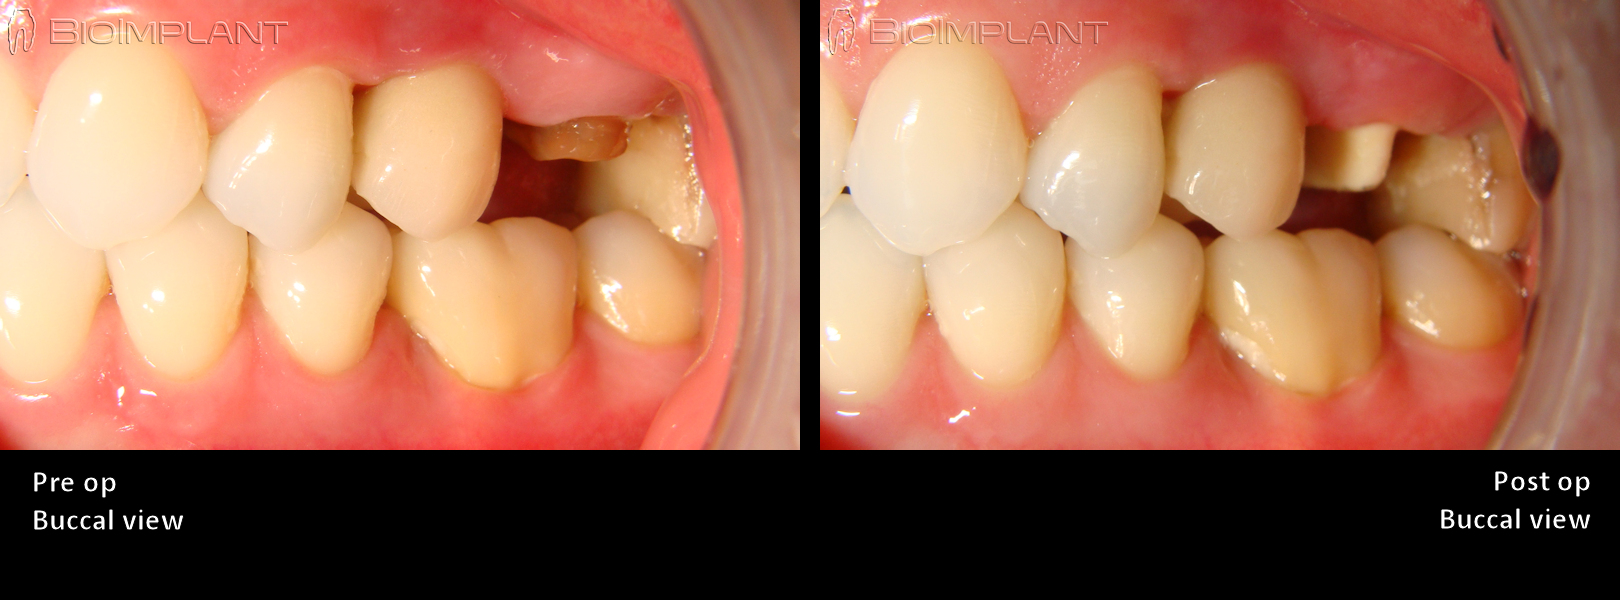 4 immediate ceramic dental implant rai